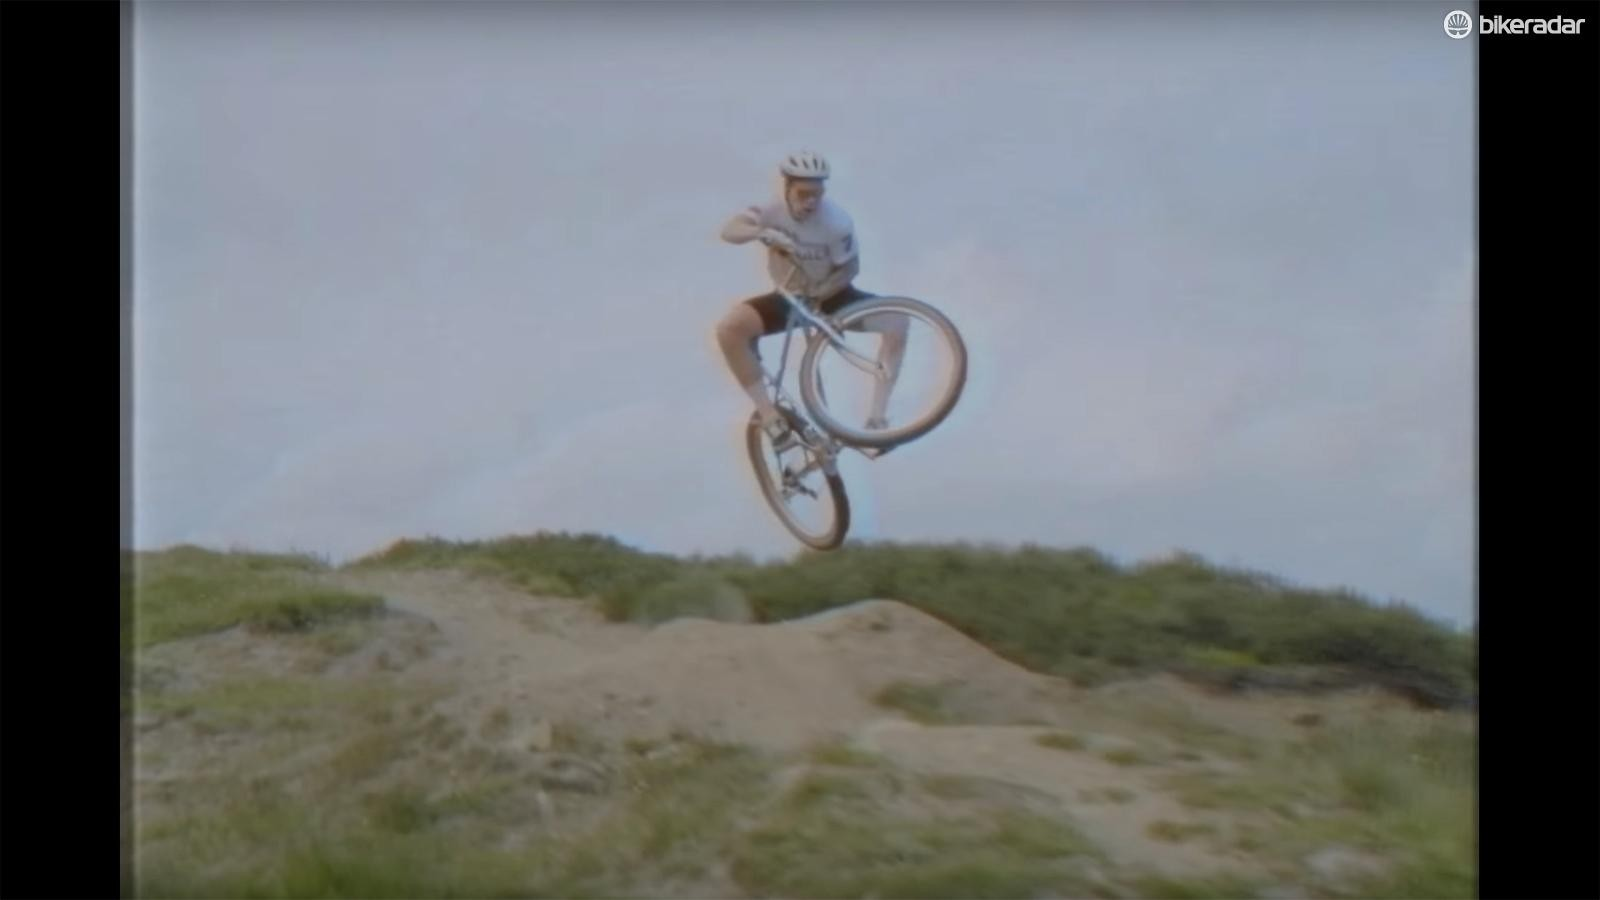 Rigid bikes and bad brakes can't stop Akrigg from having a good time